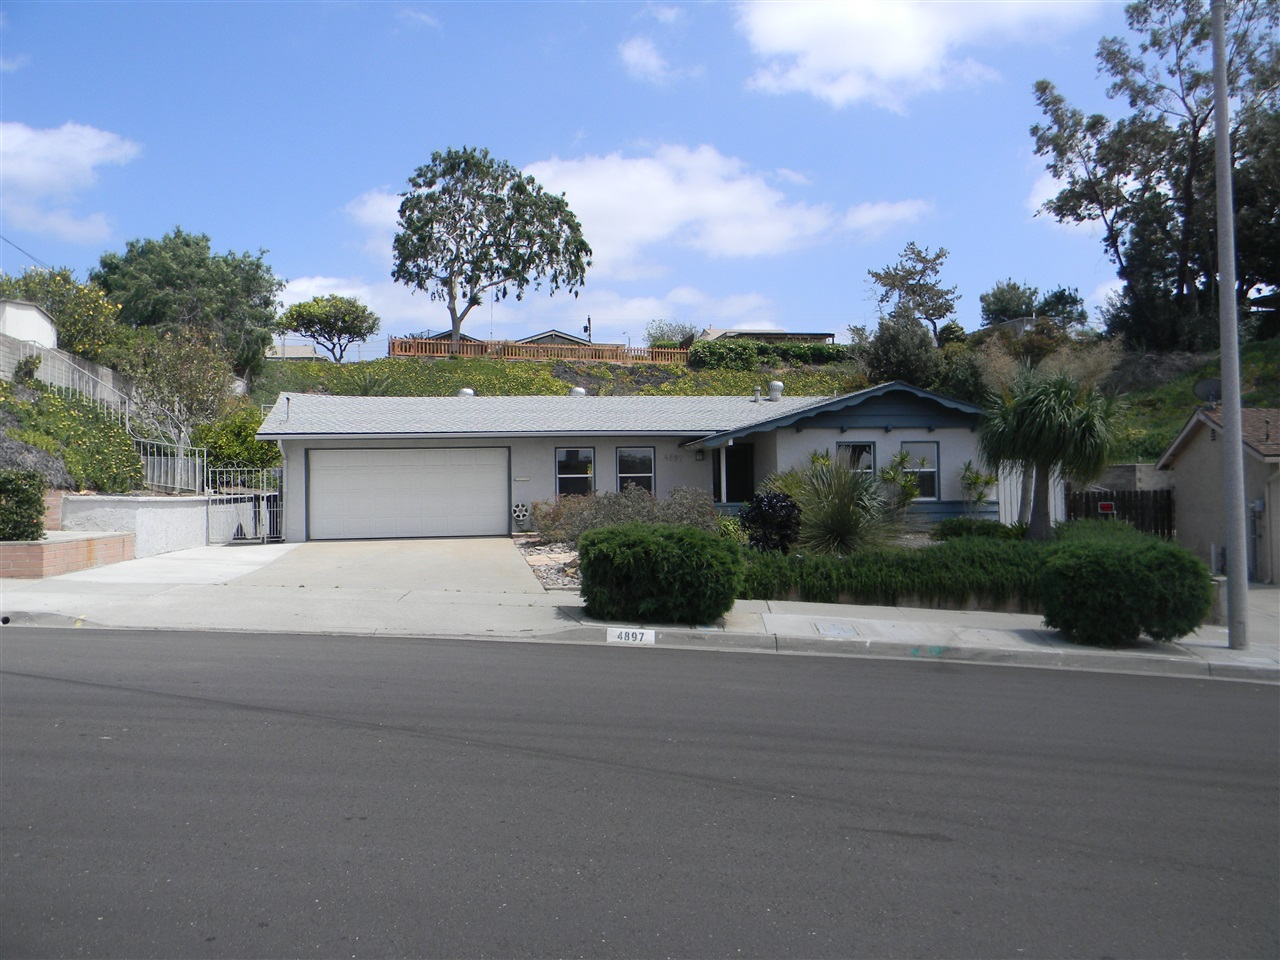 4897 Allied Rd, San Diego, CA